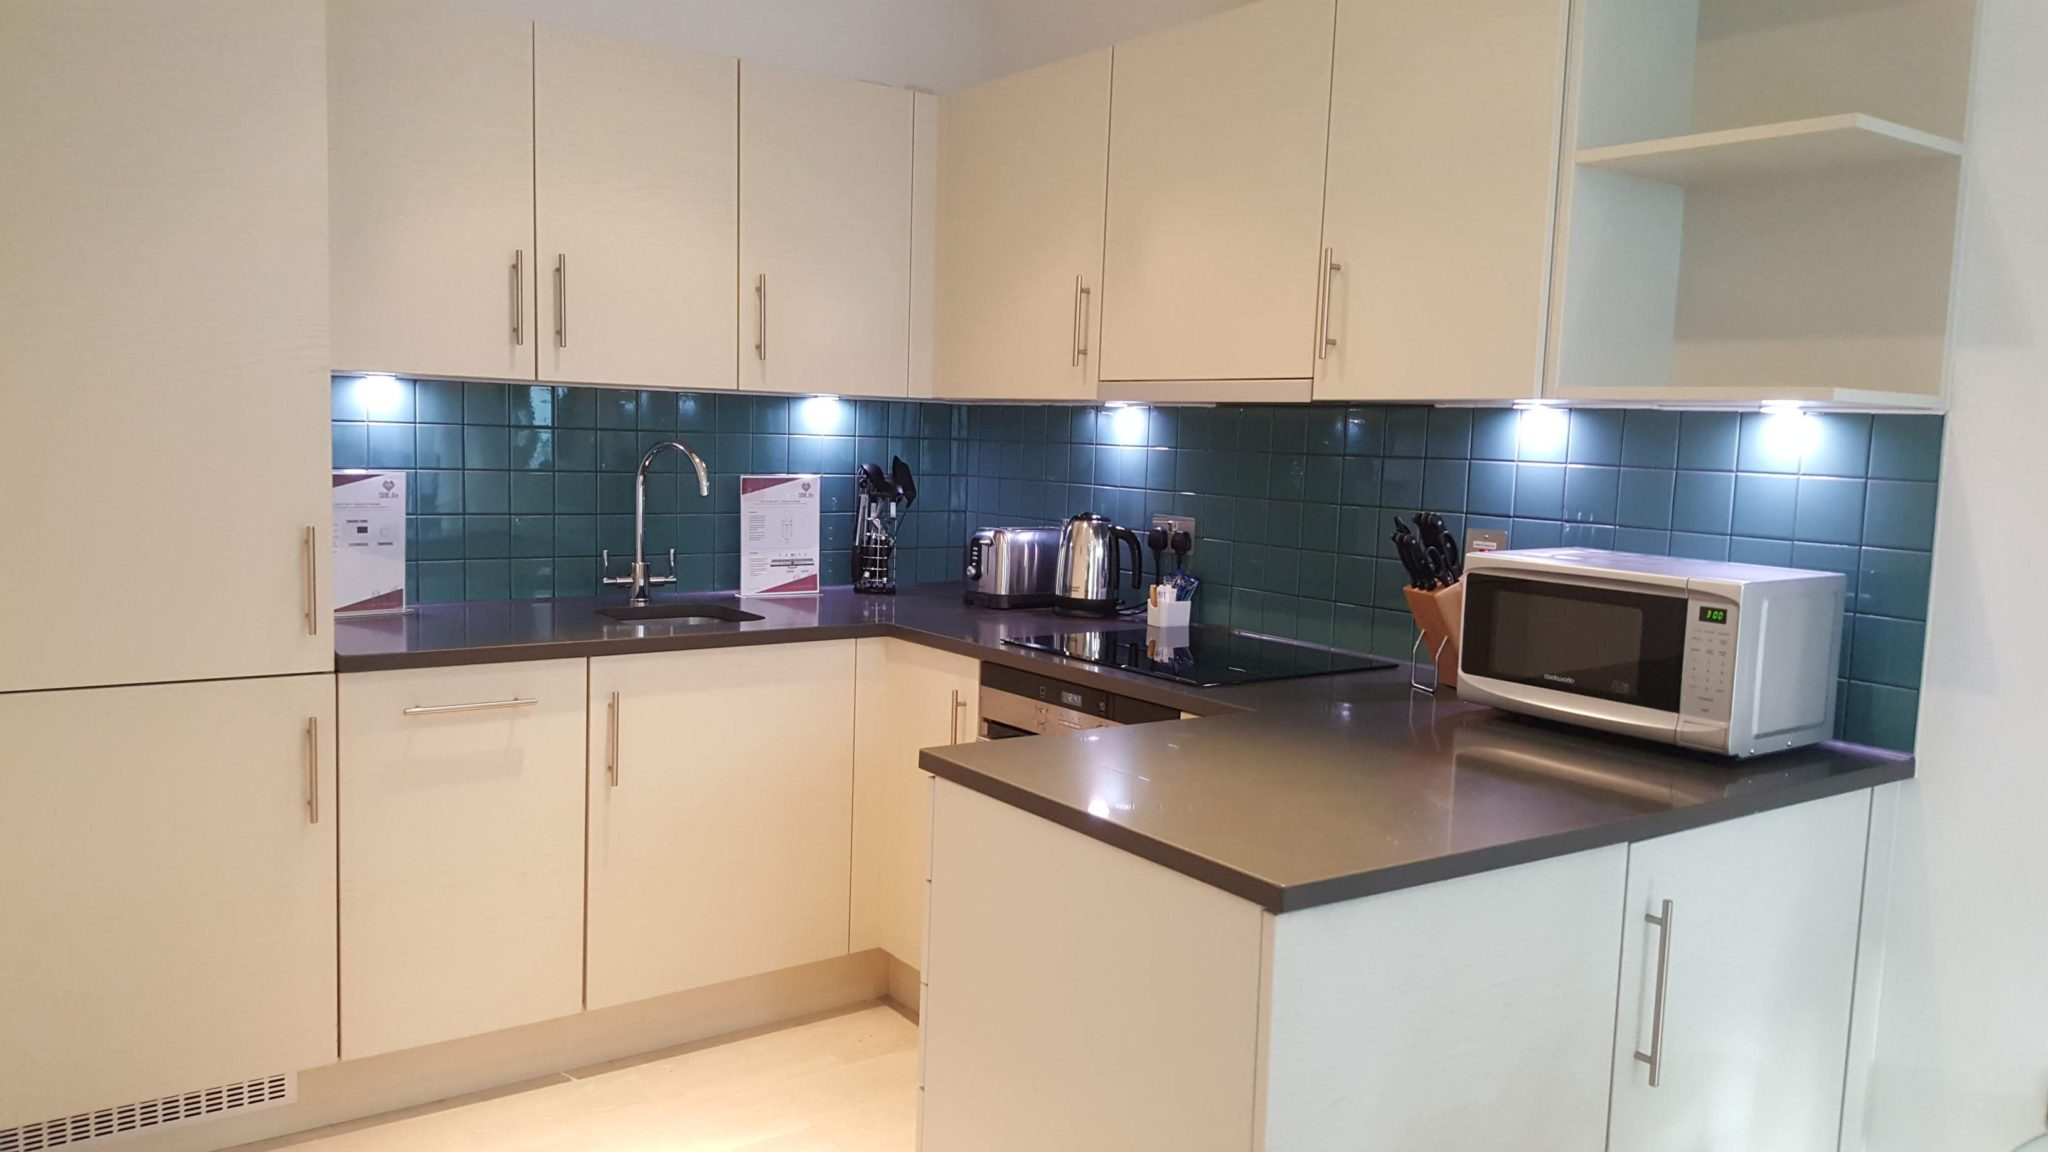 Corporate-Accommodation-London-|-Cheap-St-Pauls-Executive-Apartments-|-Free-Wi-Fi|-Fully-Equipped-Kitchen|-Lift-|0208-6913920|-Urban-Stay